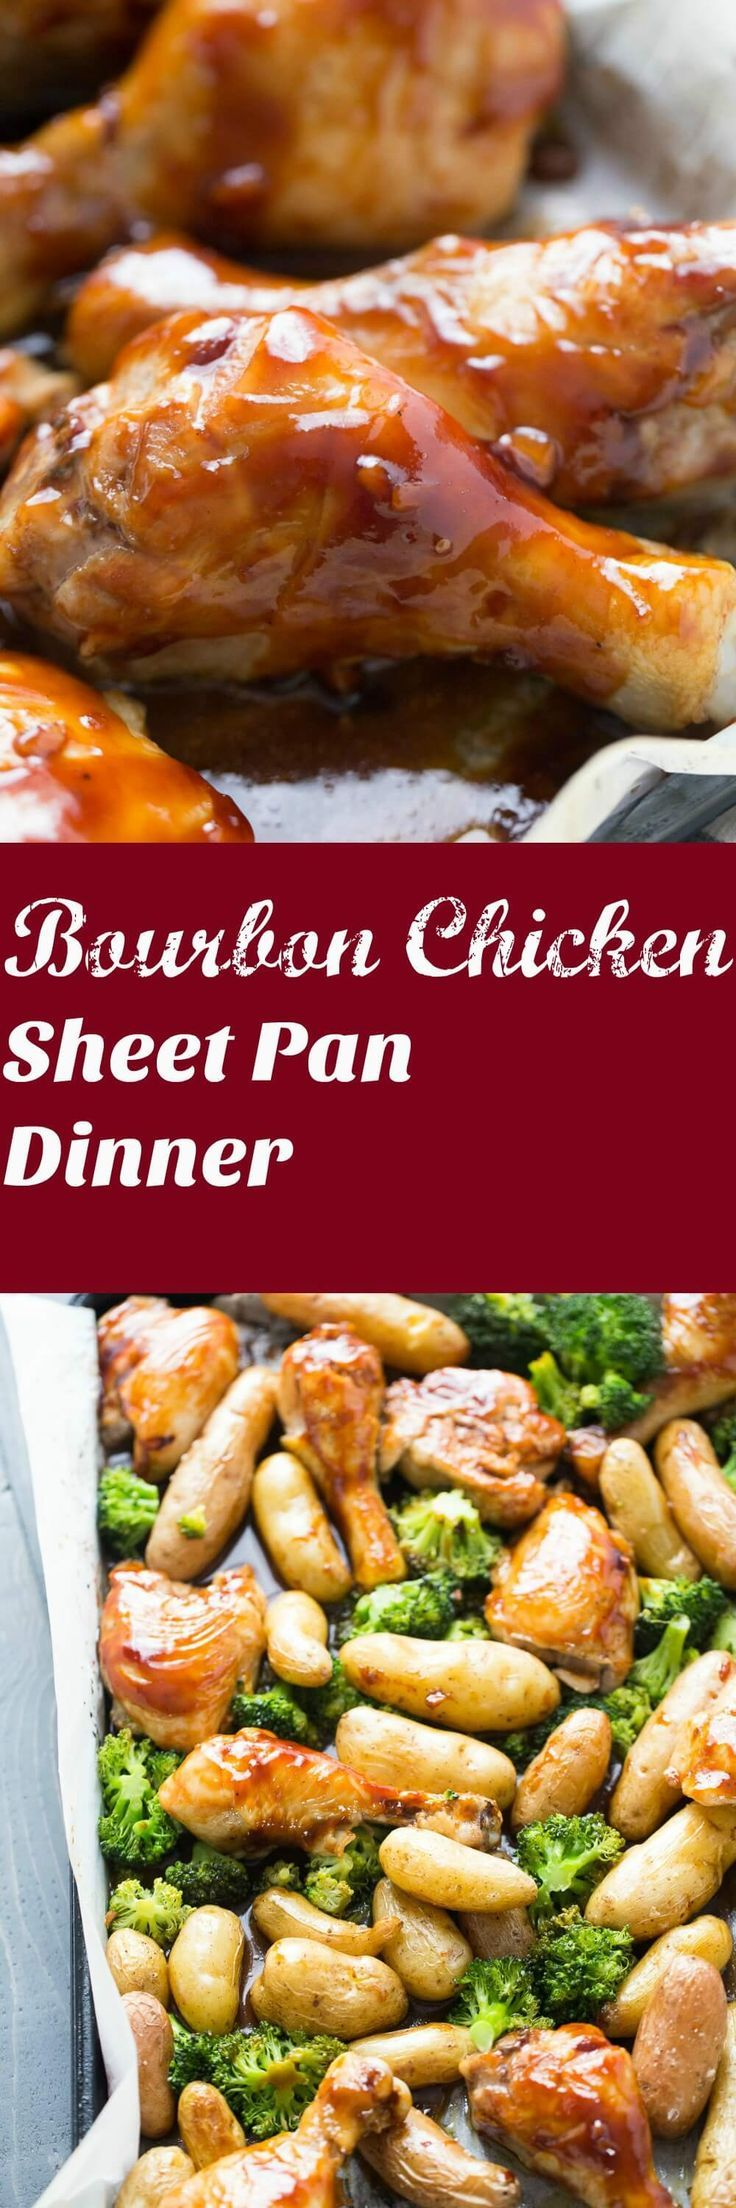 Sheet pan dinners are family friendly and easy to make!  Chicken is baked along with potatoes and broccoli then covered in a perfectly seasoned bourbon sauce!  Get the napkins ready! lemonsforlulu.com via @Lemonsforlulu